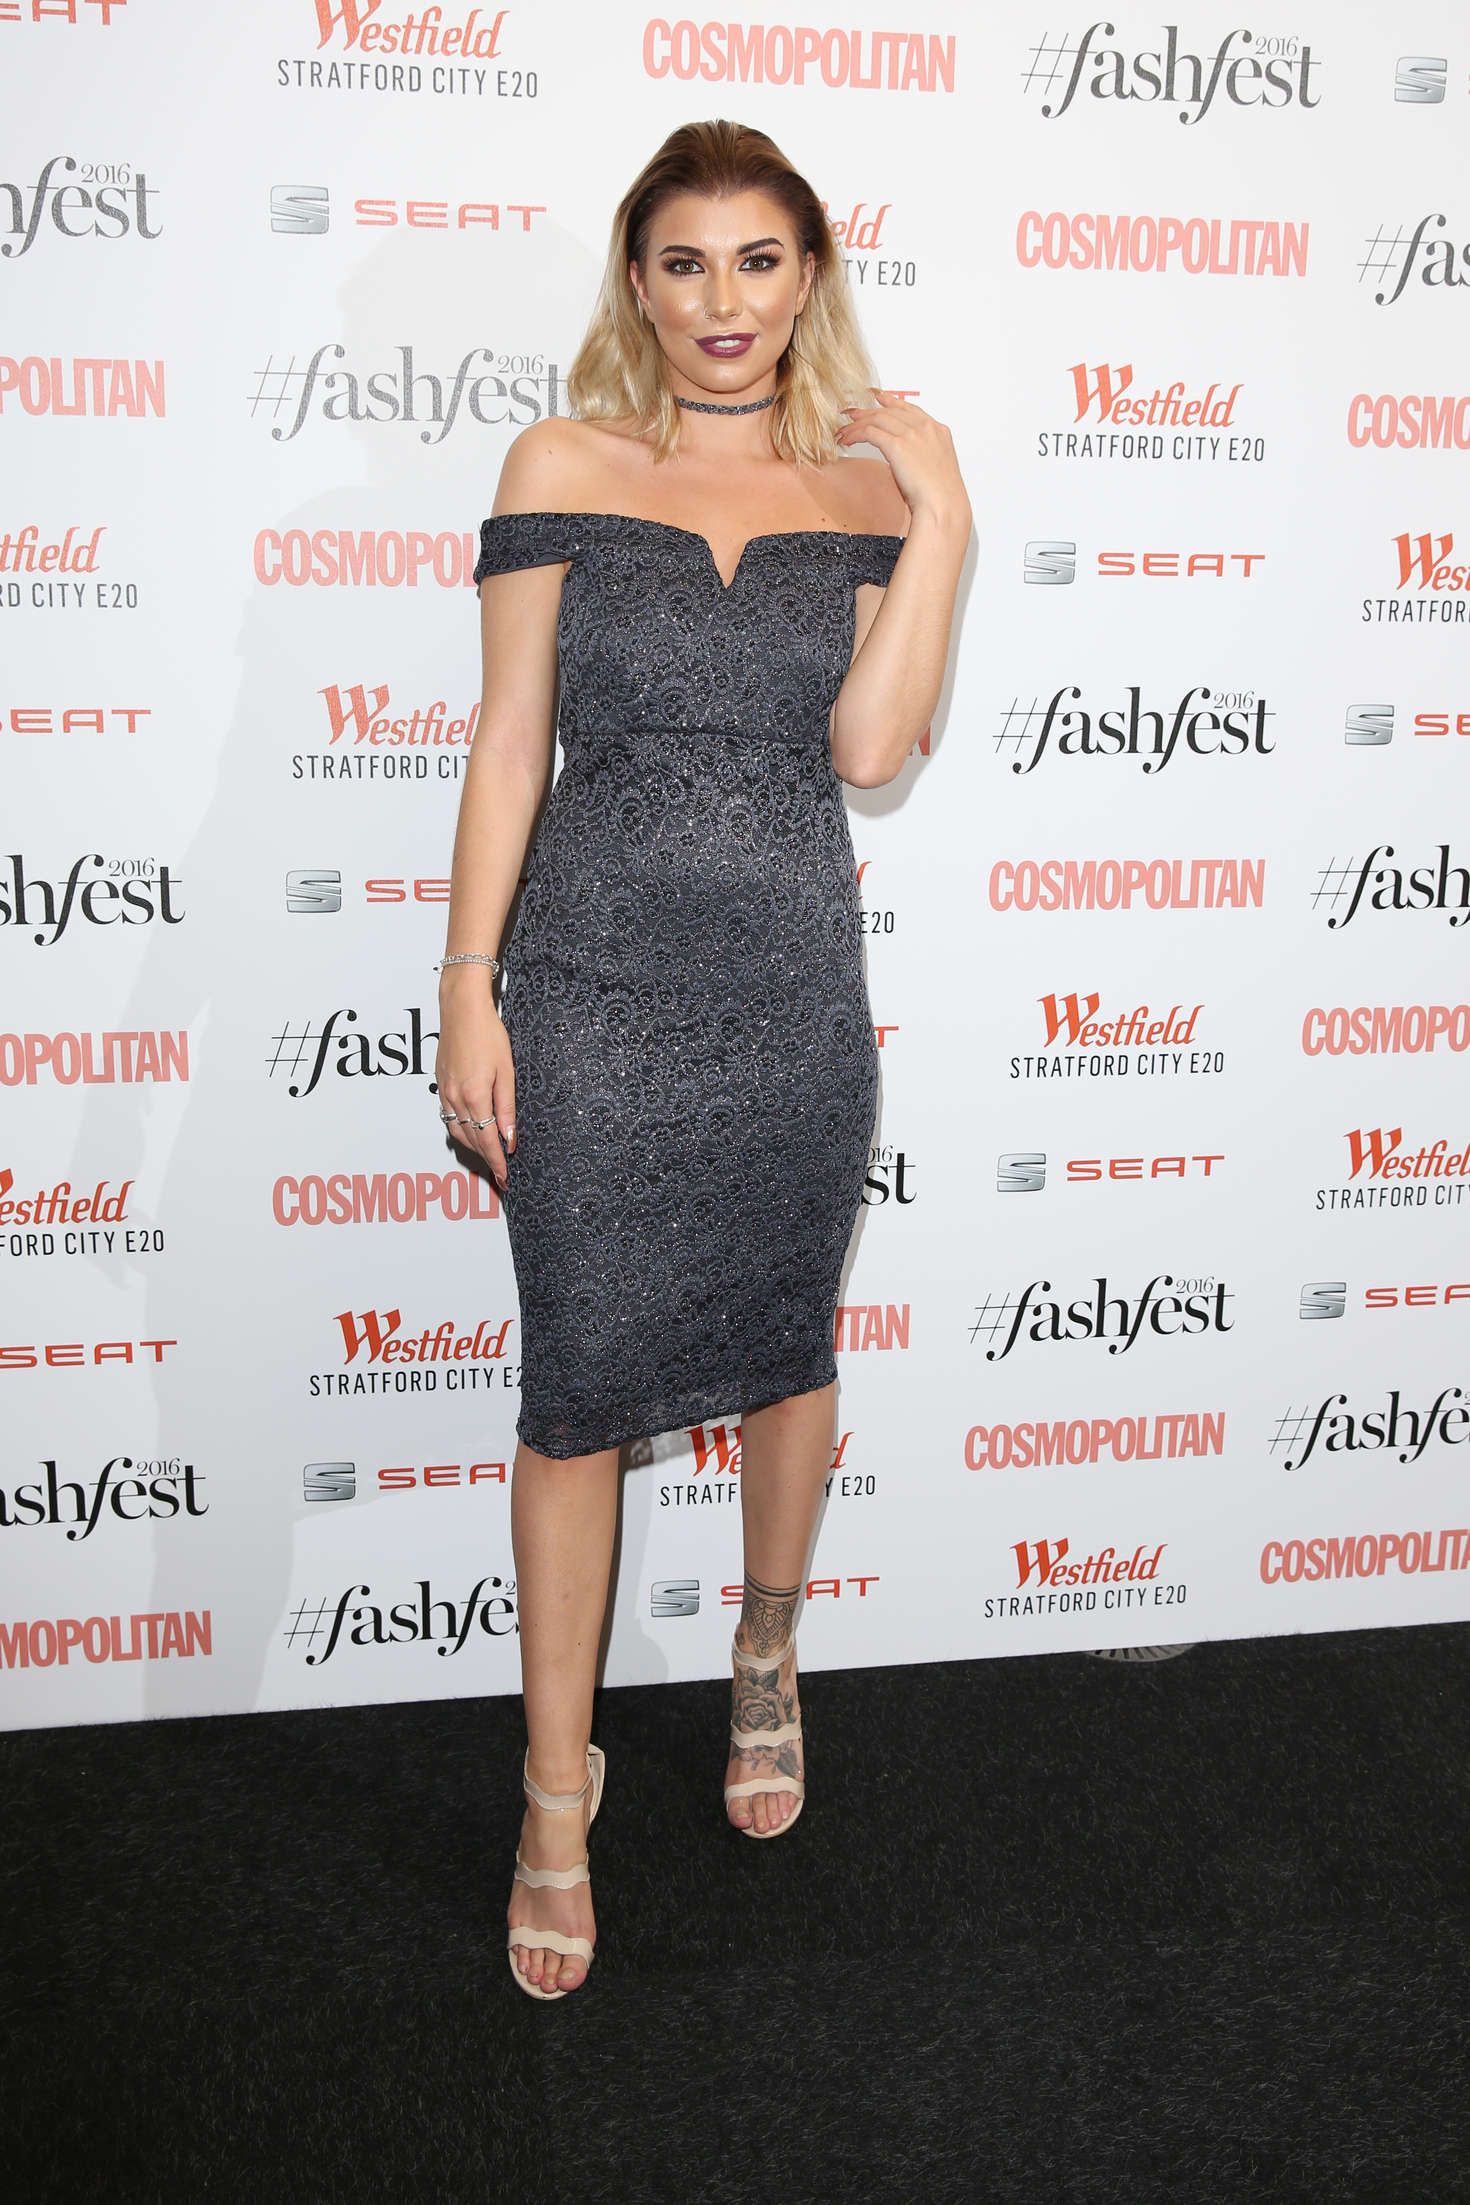 Olivia Buckland - Cosmopolitan #Fashfest 2016 VIP Show and Party in London